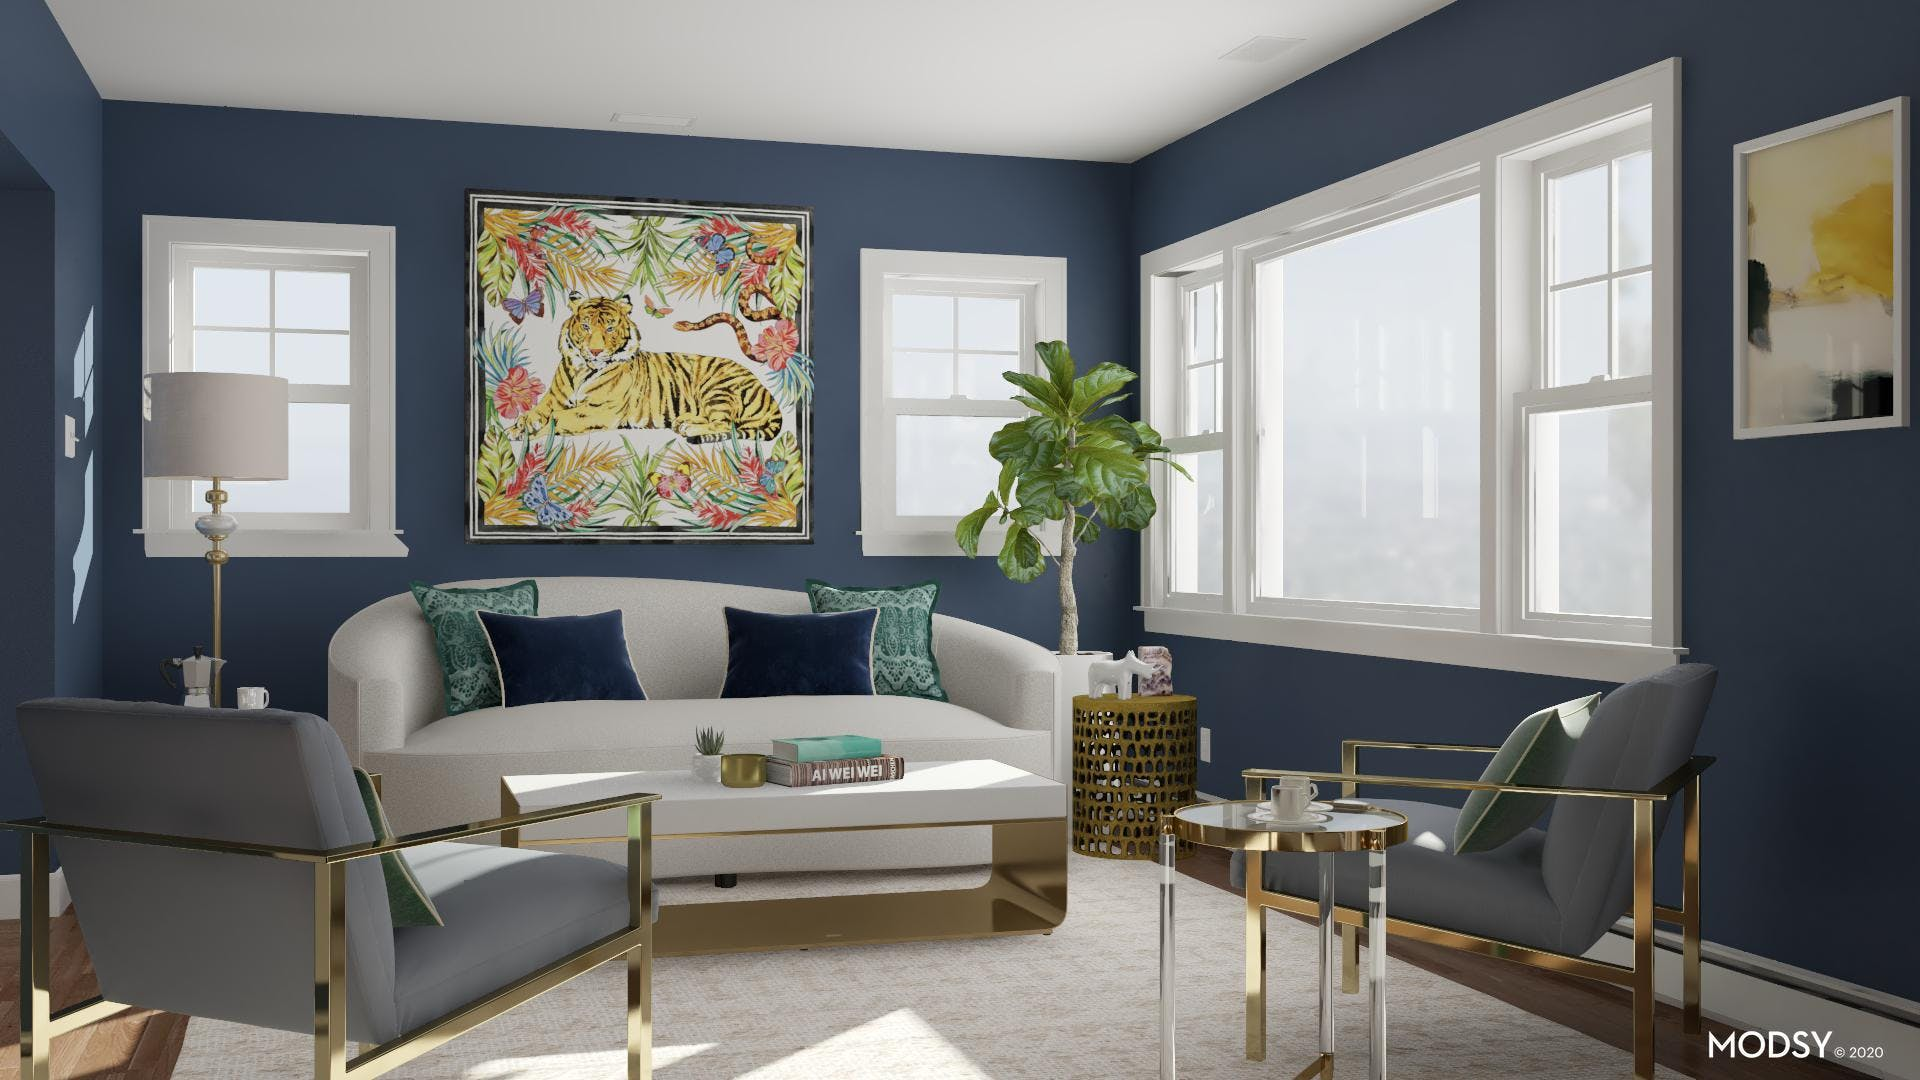 Elegance And Glamour Take Center Stage In This Living Room